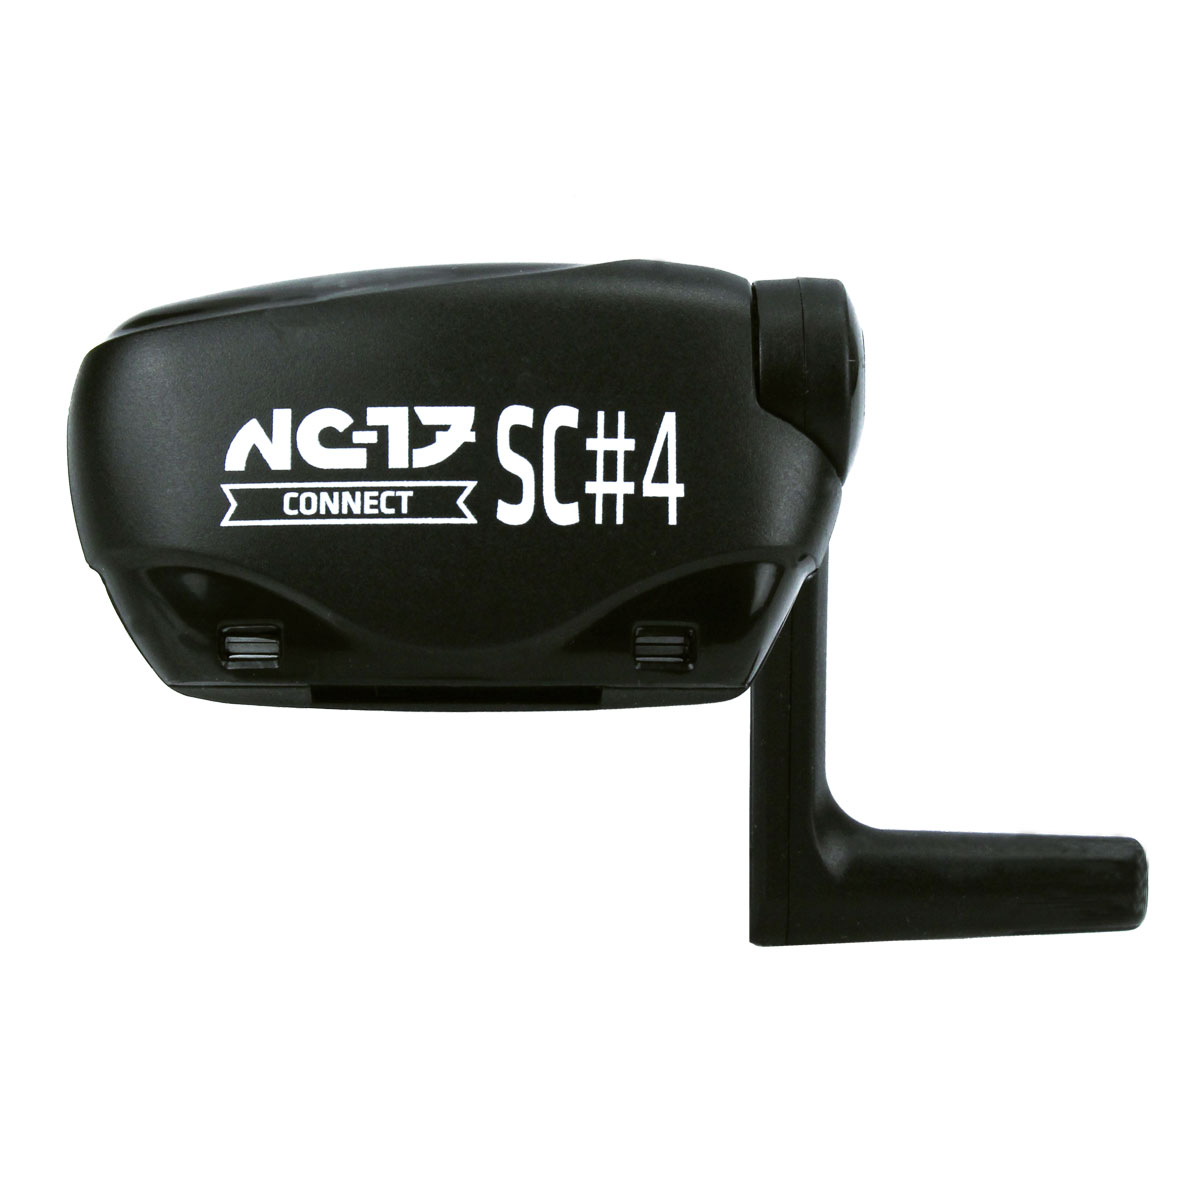 NC-17 Connect SC#4 Speed u. Trittfrequenz<br/>ANT+ und Bluetooth 4.0<br/>&nbsp;&nbsp;